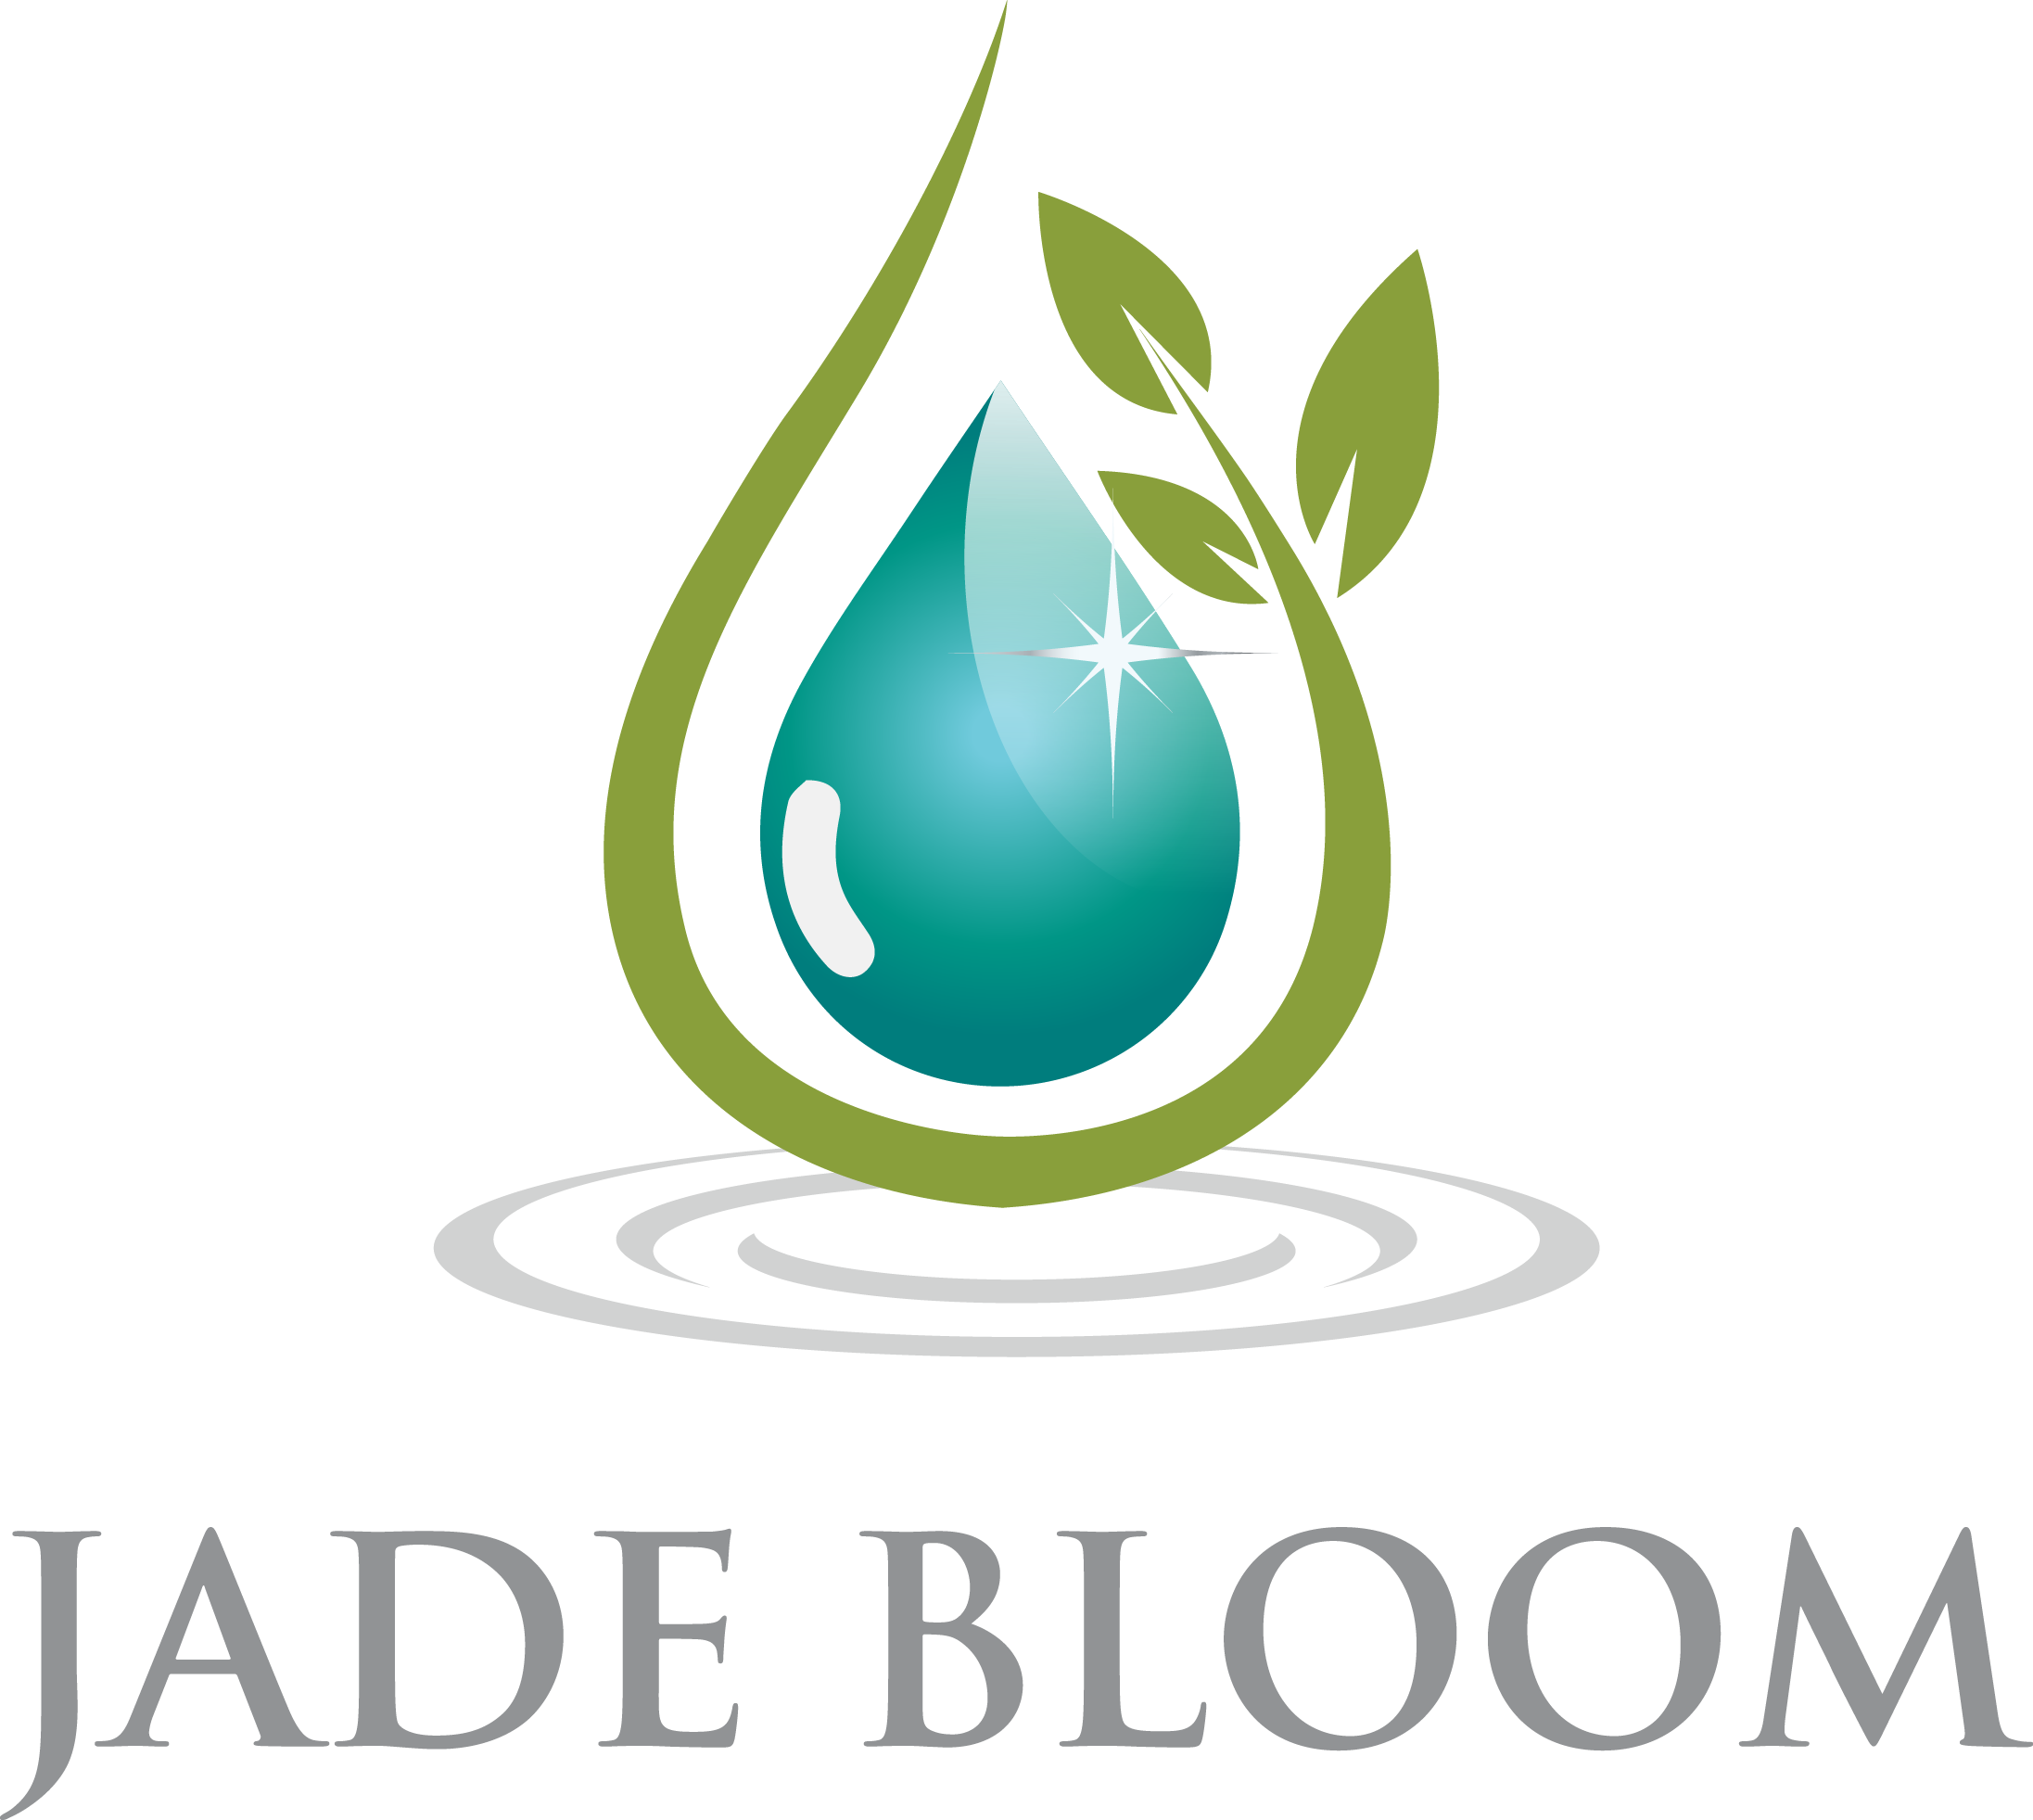 Jade Bloom Discount Code